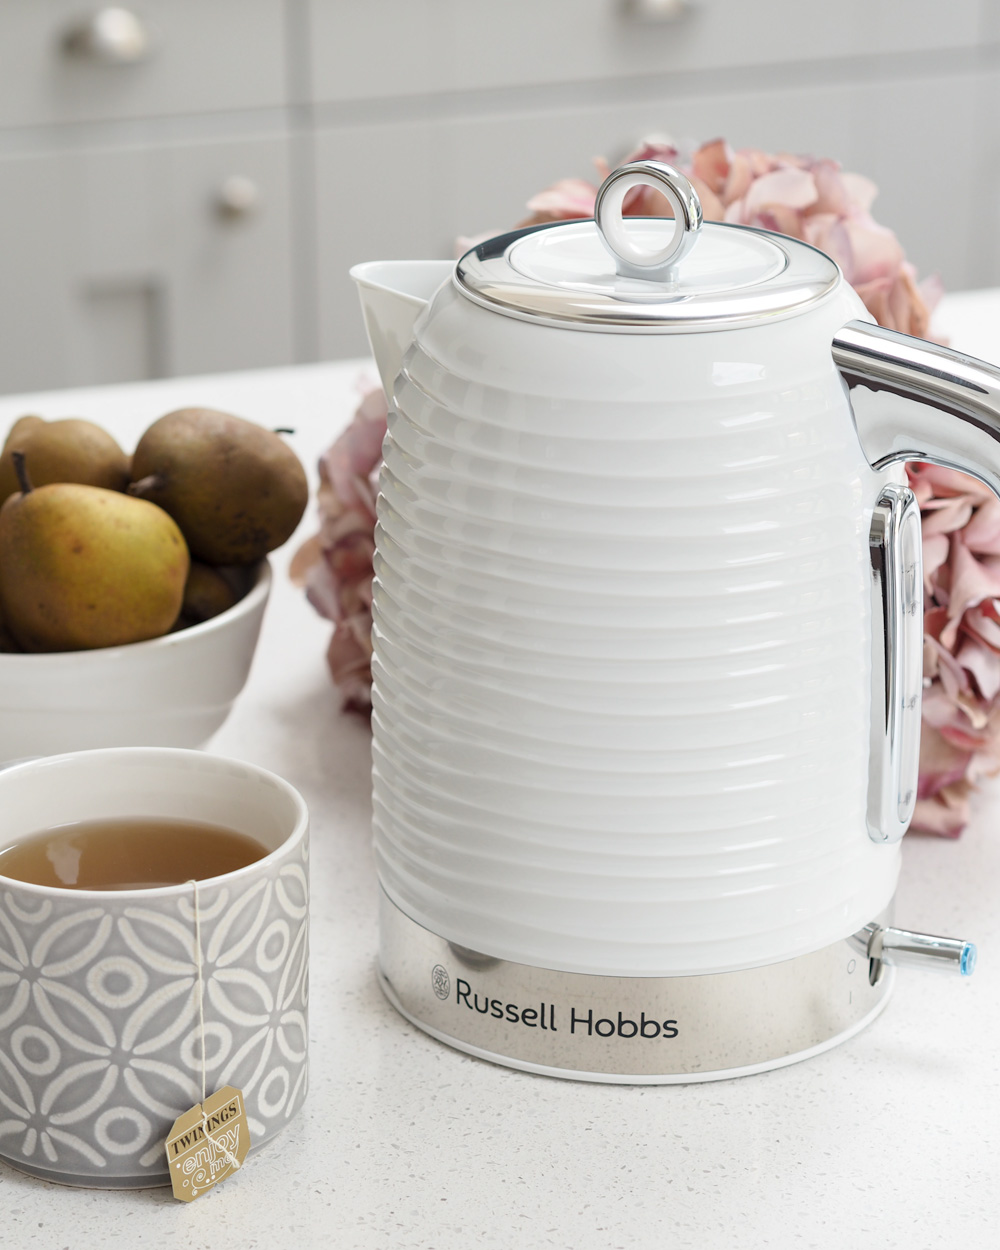 Review of Russell Hobbs Kitchen Accessories Grey kitchen